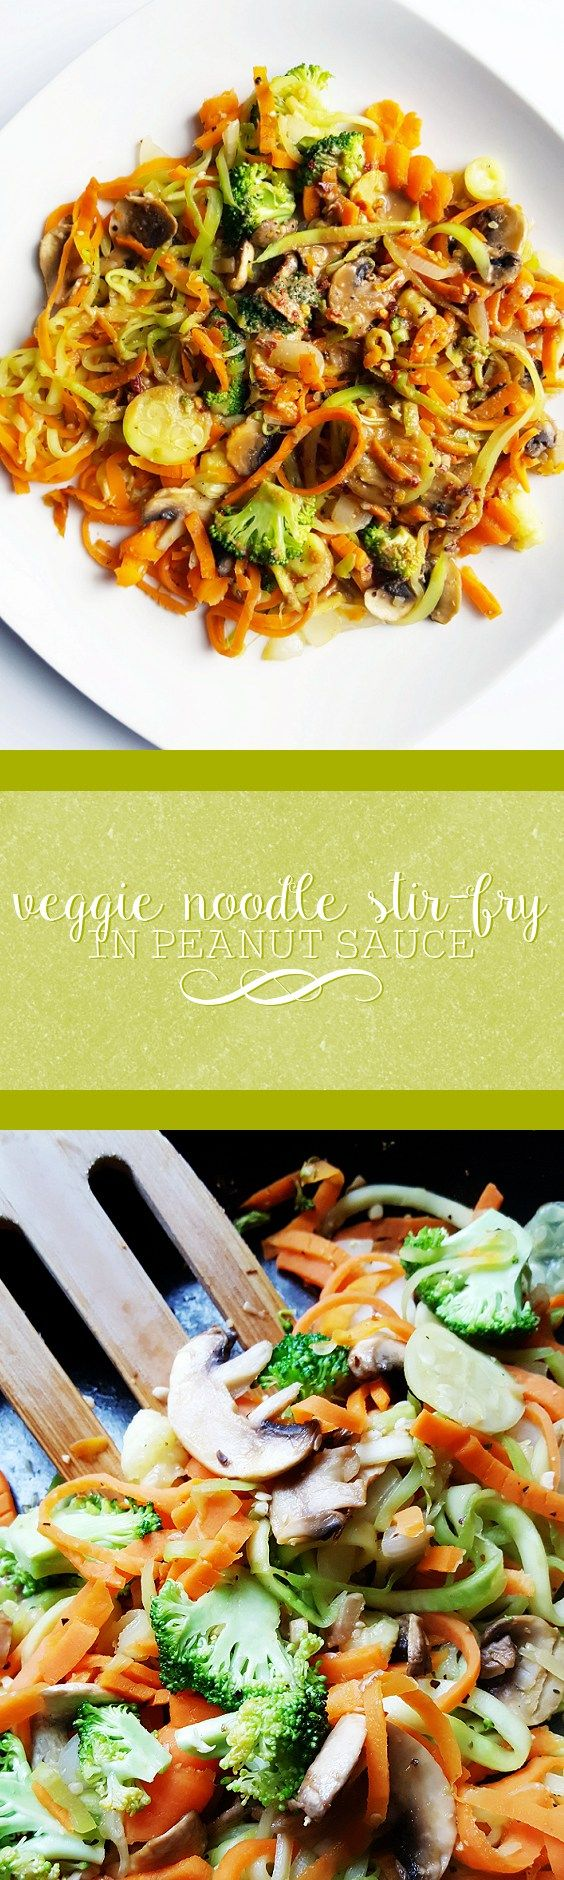 Veggie Noodle Stir-Fry in Peanut Sauce | Perfect for a light and simple meal, this stir-fry is filled with chopped and spiralized veggies and drizzled with a bold and flavorful peanut sauce.